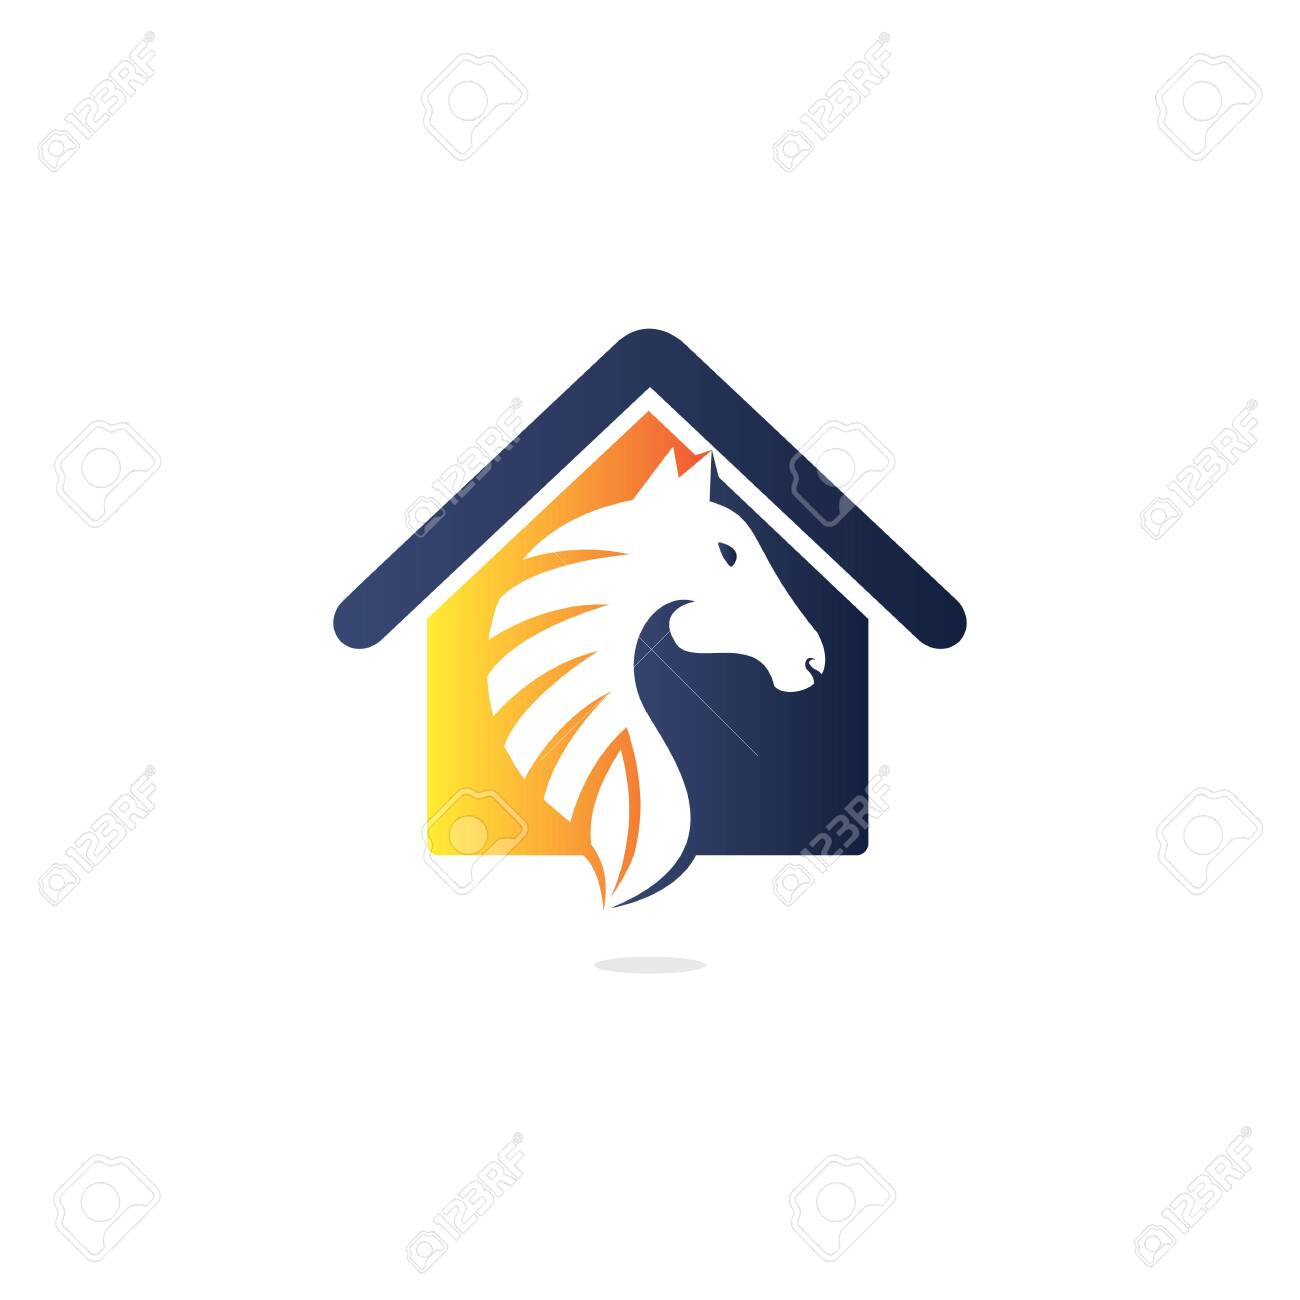 Horse And House Logo Design Template Creative Horse And House Royalty Free Cliparts Vectors And Stock Illustration Image 142847674